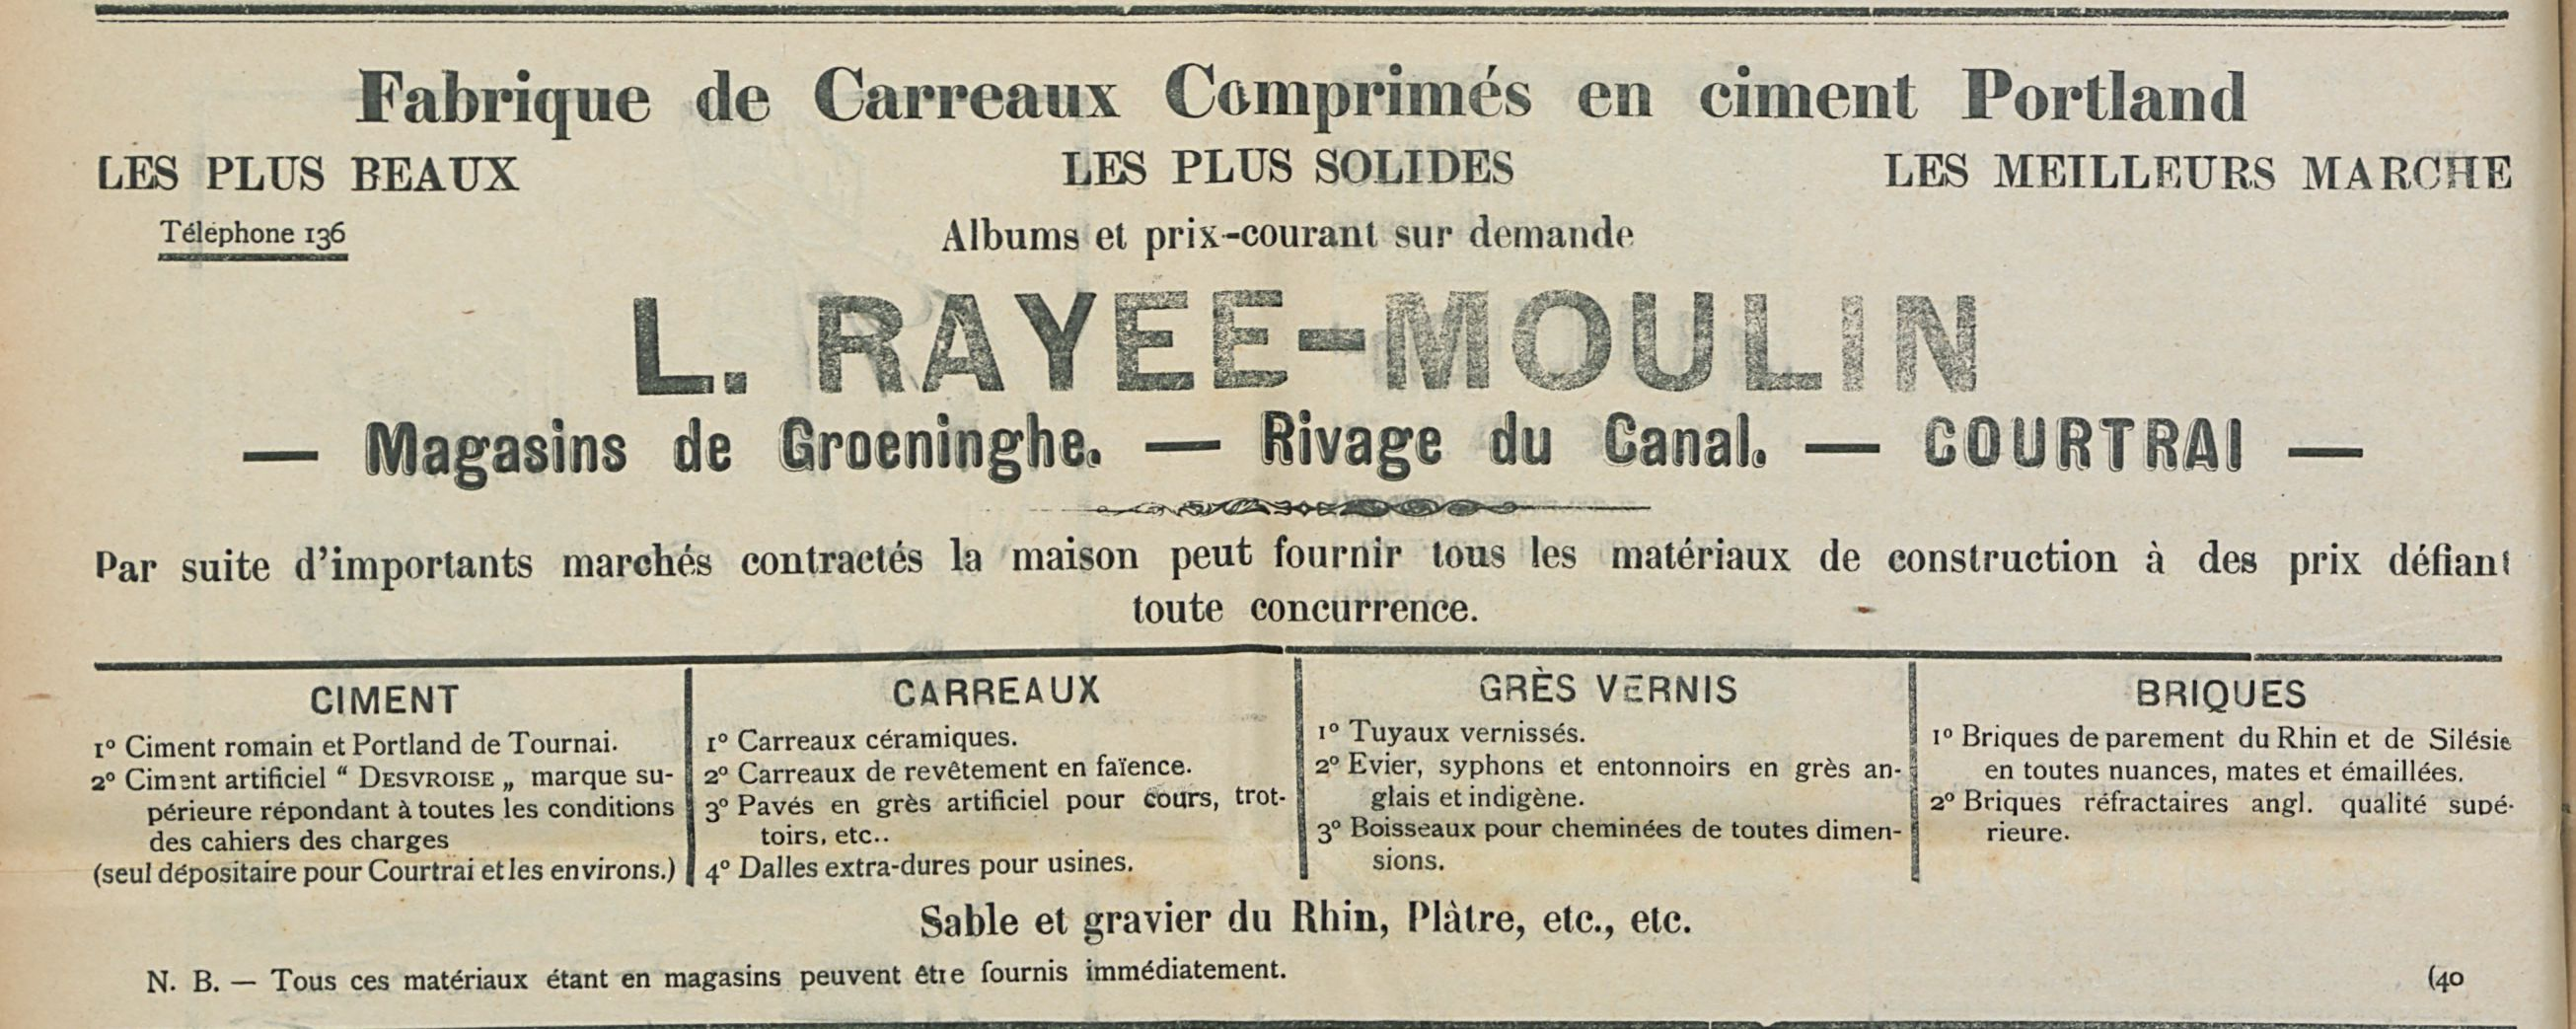 L.RAYEE-MOULIN